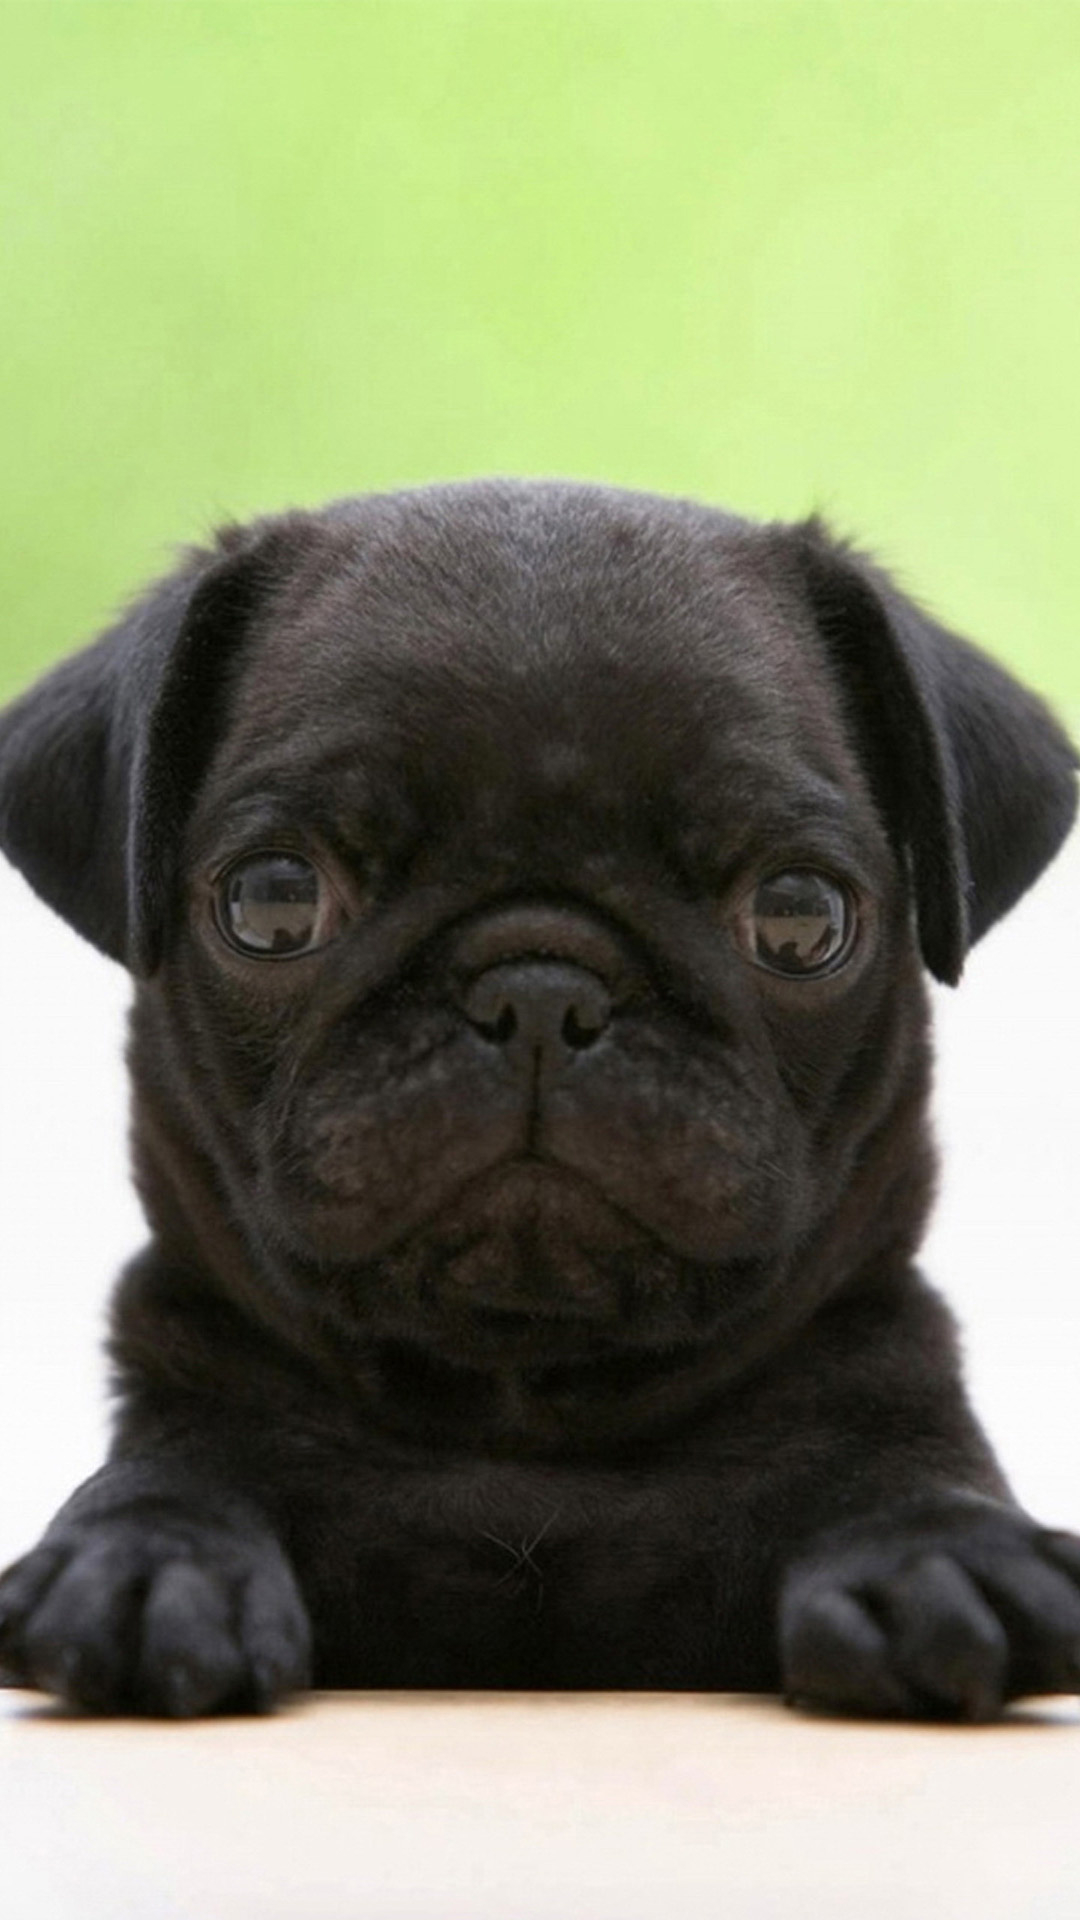 funny black pug hd wallpaper iphone 6 plus